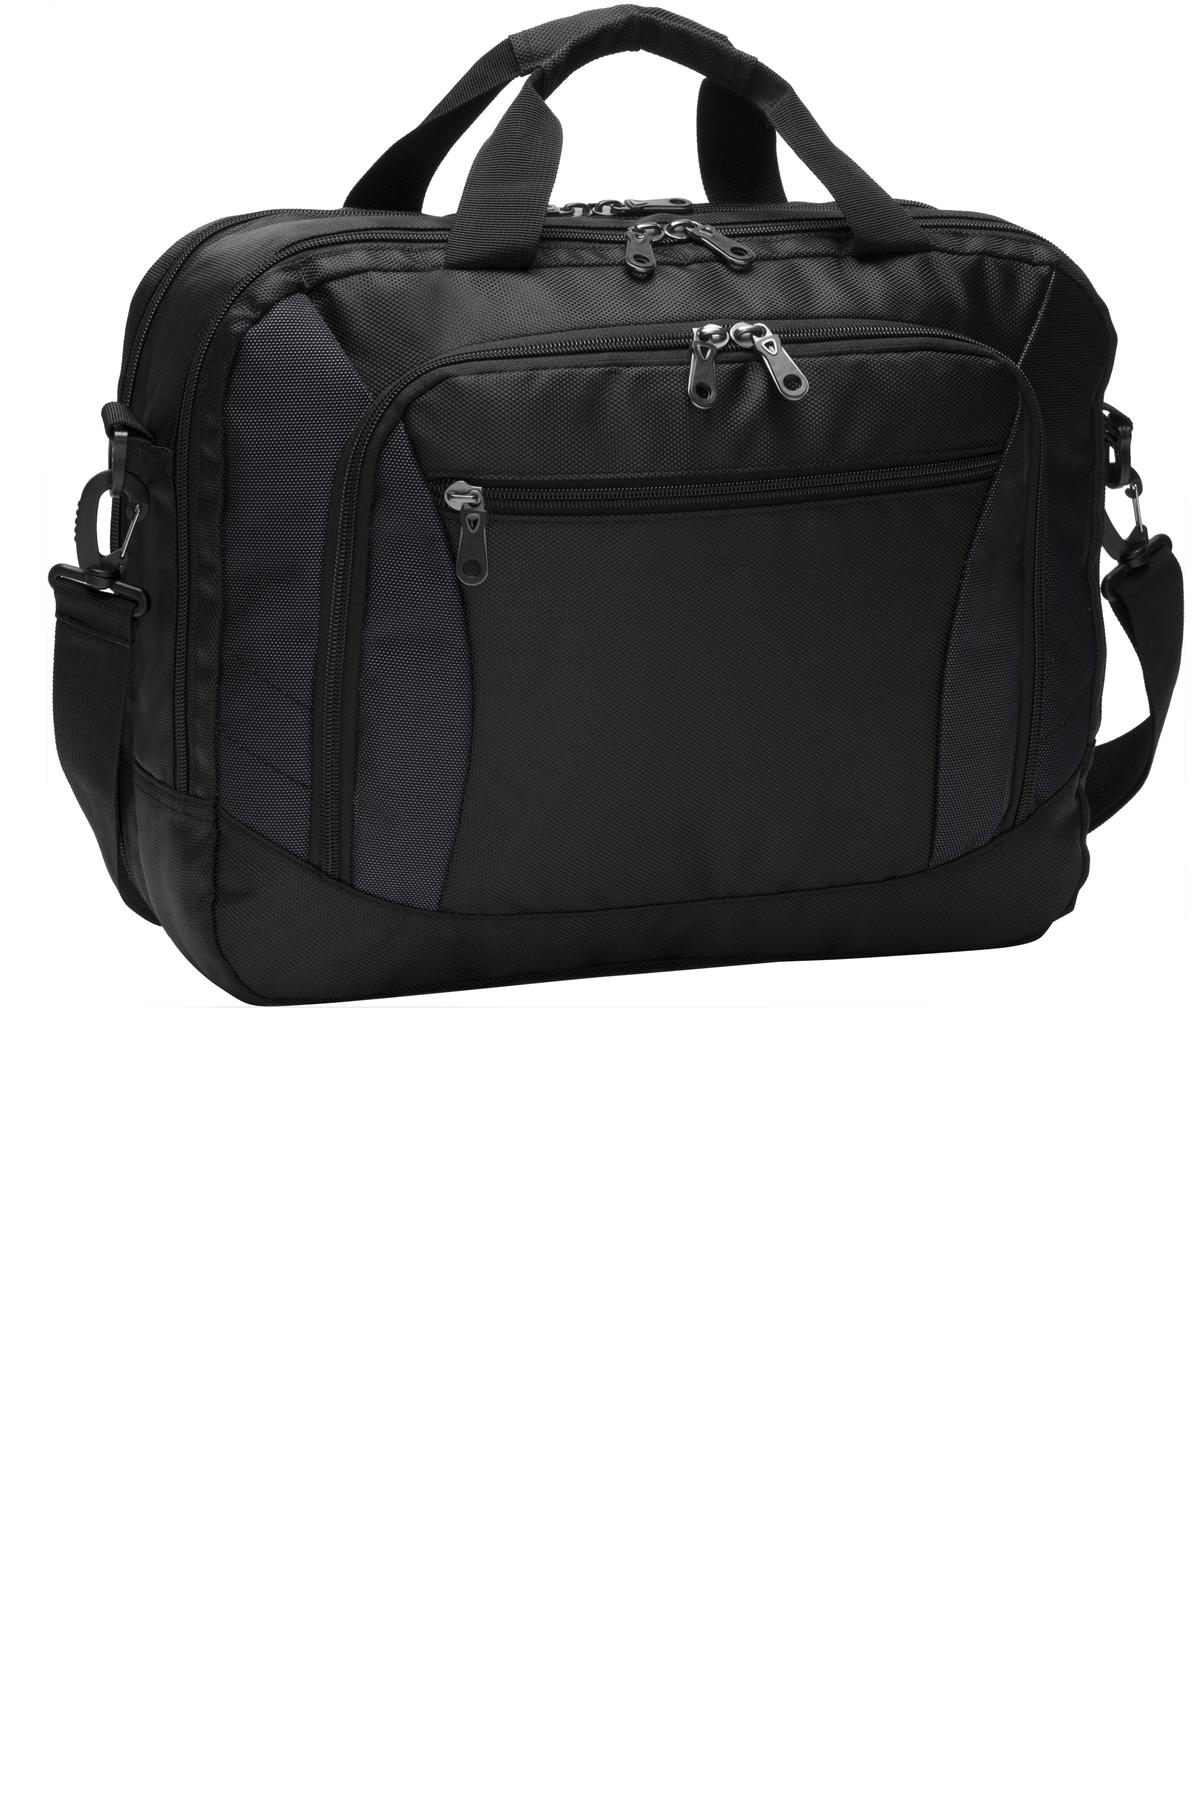 Port Authority ®  Commuter Brief. BG307 - Black